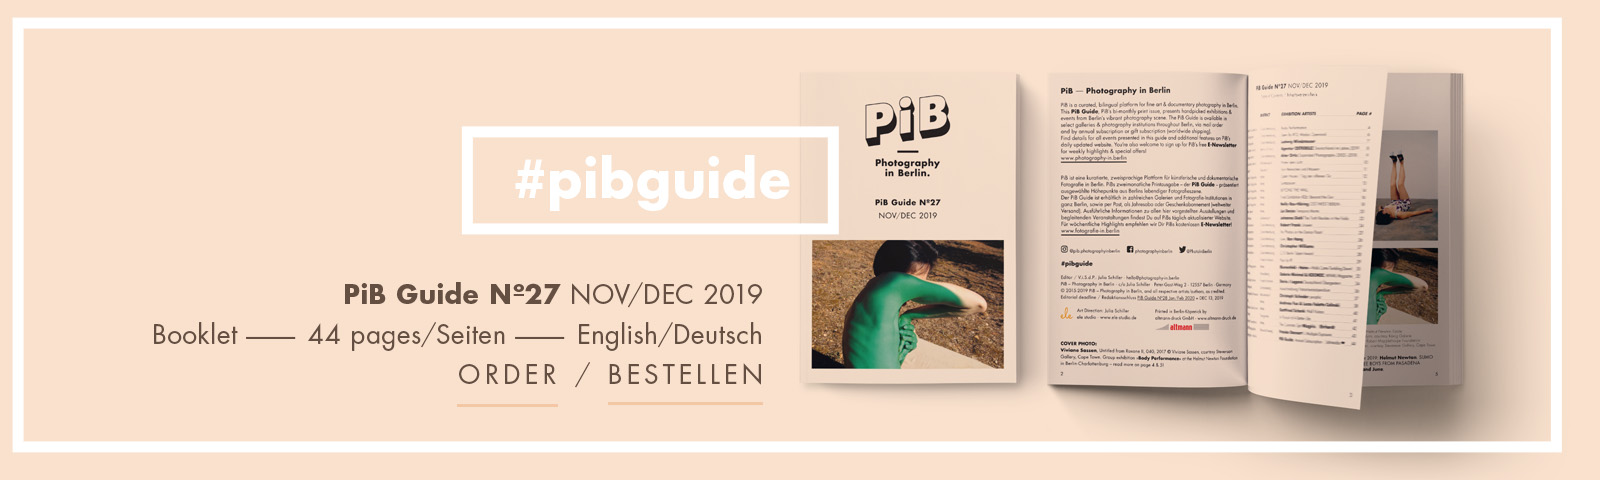 PiB Guide Nº27 NOV/DEC 2019 © PiB – Photography In Berlin. #pibguide. Booklet, A6 Format · 44 Pages · English & German · Worldwide Shipping +++ COVER PHOTO: Viviane Sassen, Untitled From Roxane II, 040, 2017 © Viviane Sassen, Courtesy Stevenson Gallery, Cape Town. Group Exhibition »Body Performance« At The Helmut Newton Foundation In Berlin-Charlottenburg. +++ Editor / V.i.S.d.P.: Julia Schiller +++ Art Direction By Julia Schiller · Ele Studio Berlin · Www.ele-studio.de +++ Printed In Berlin-Köpenick By Altmann-druck GmbH · Www.altmann-druck.de